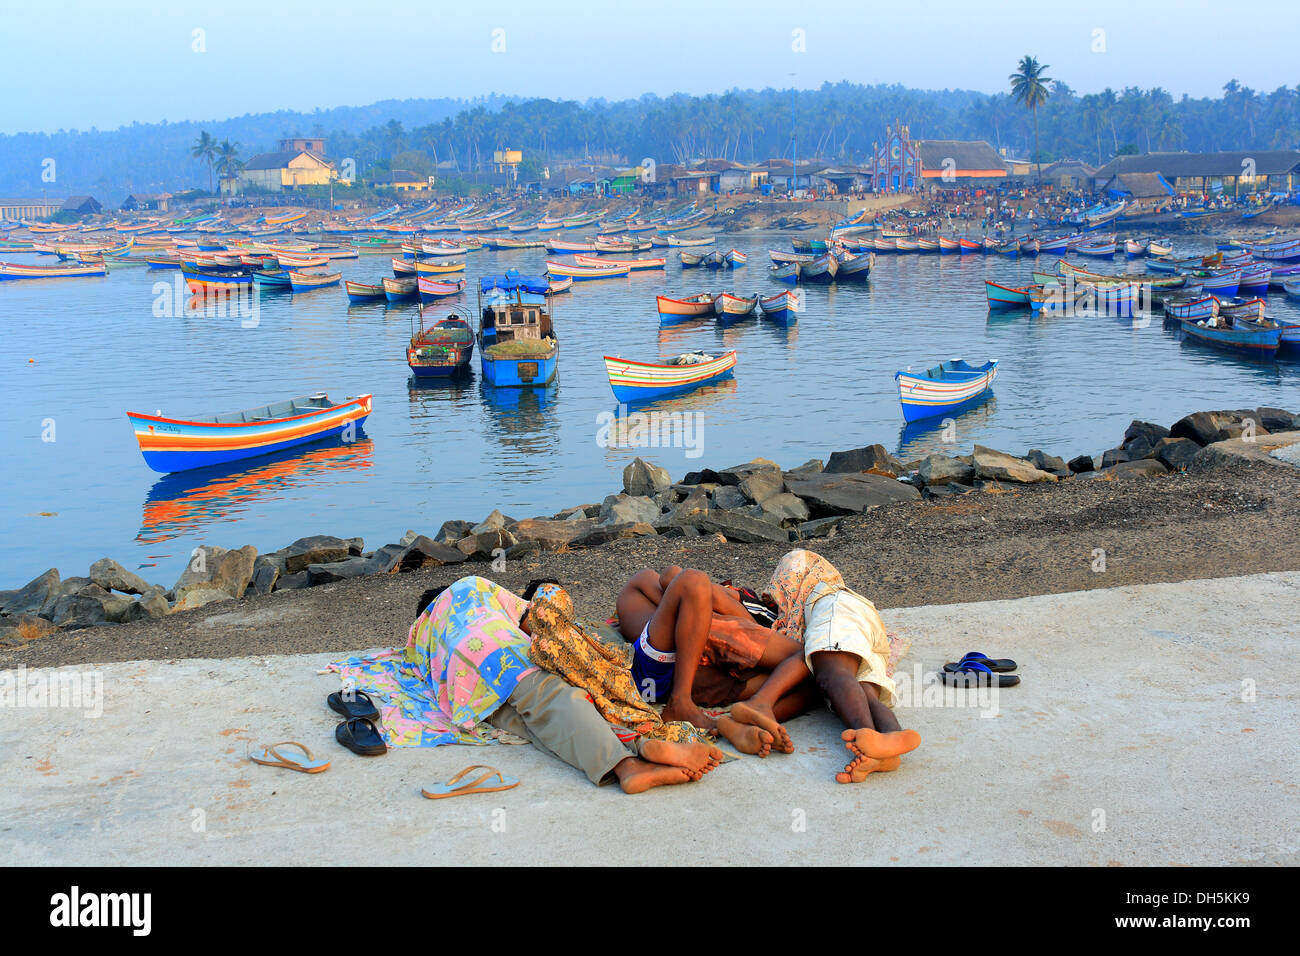 Vizhinjam fishing harbor - Stock Image